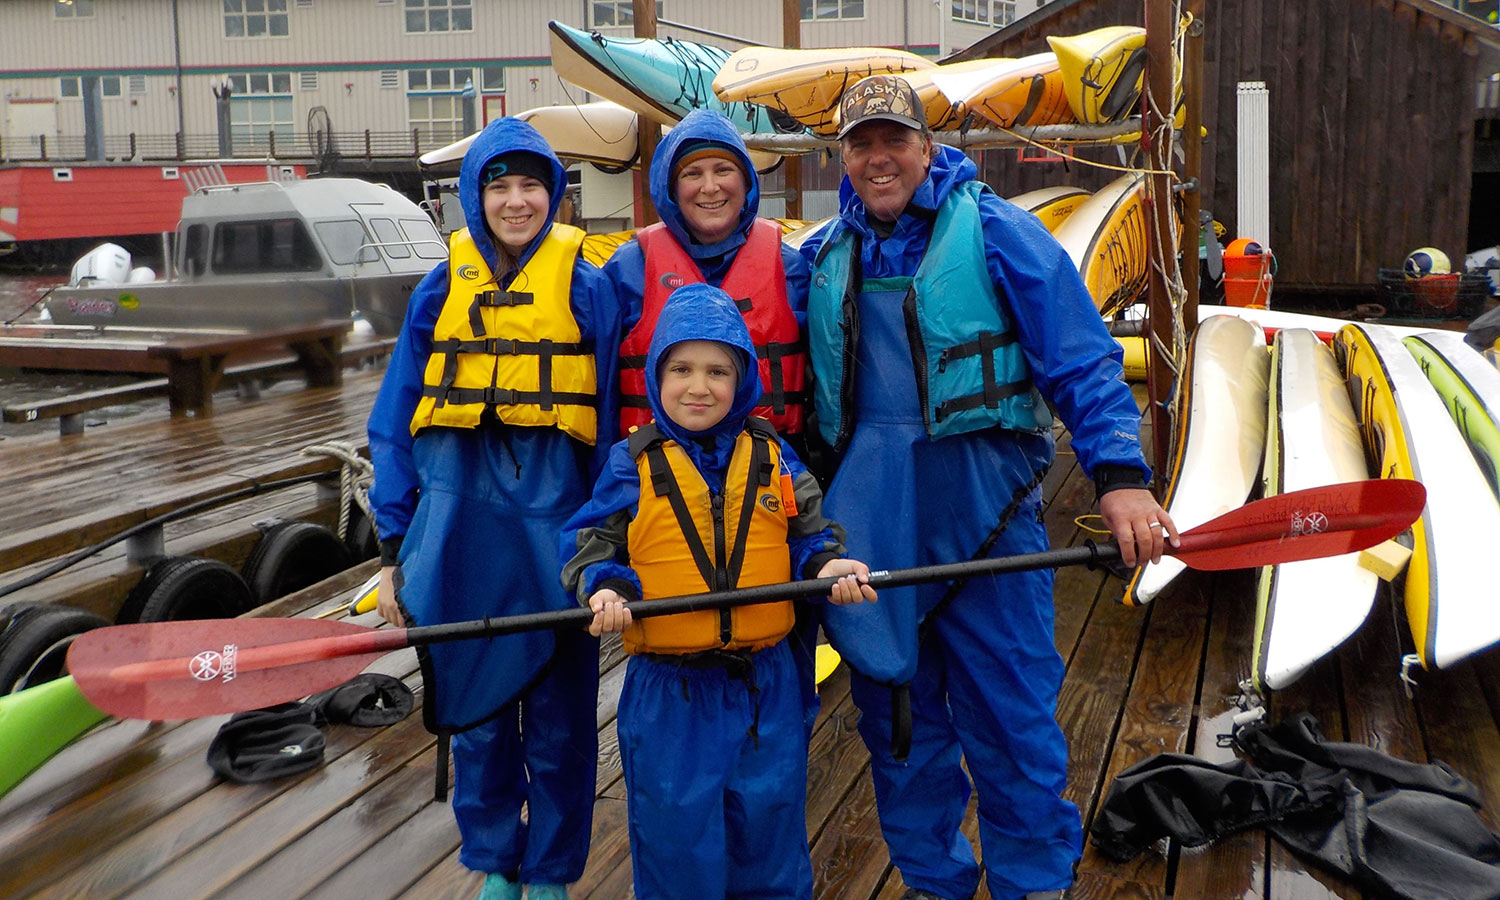 Visitors to Ketchikan geared up for a rainy paddle.